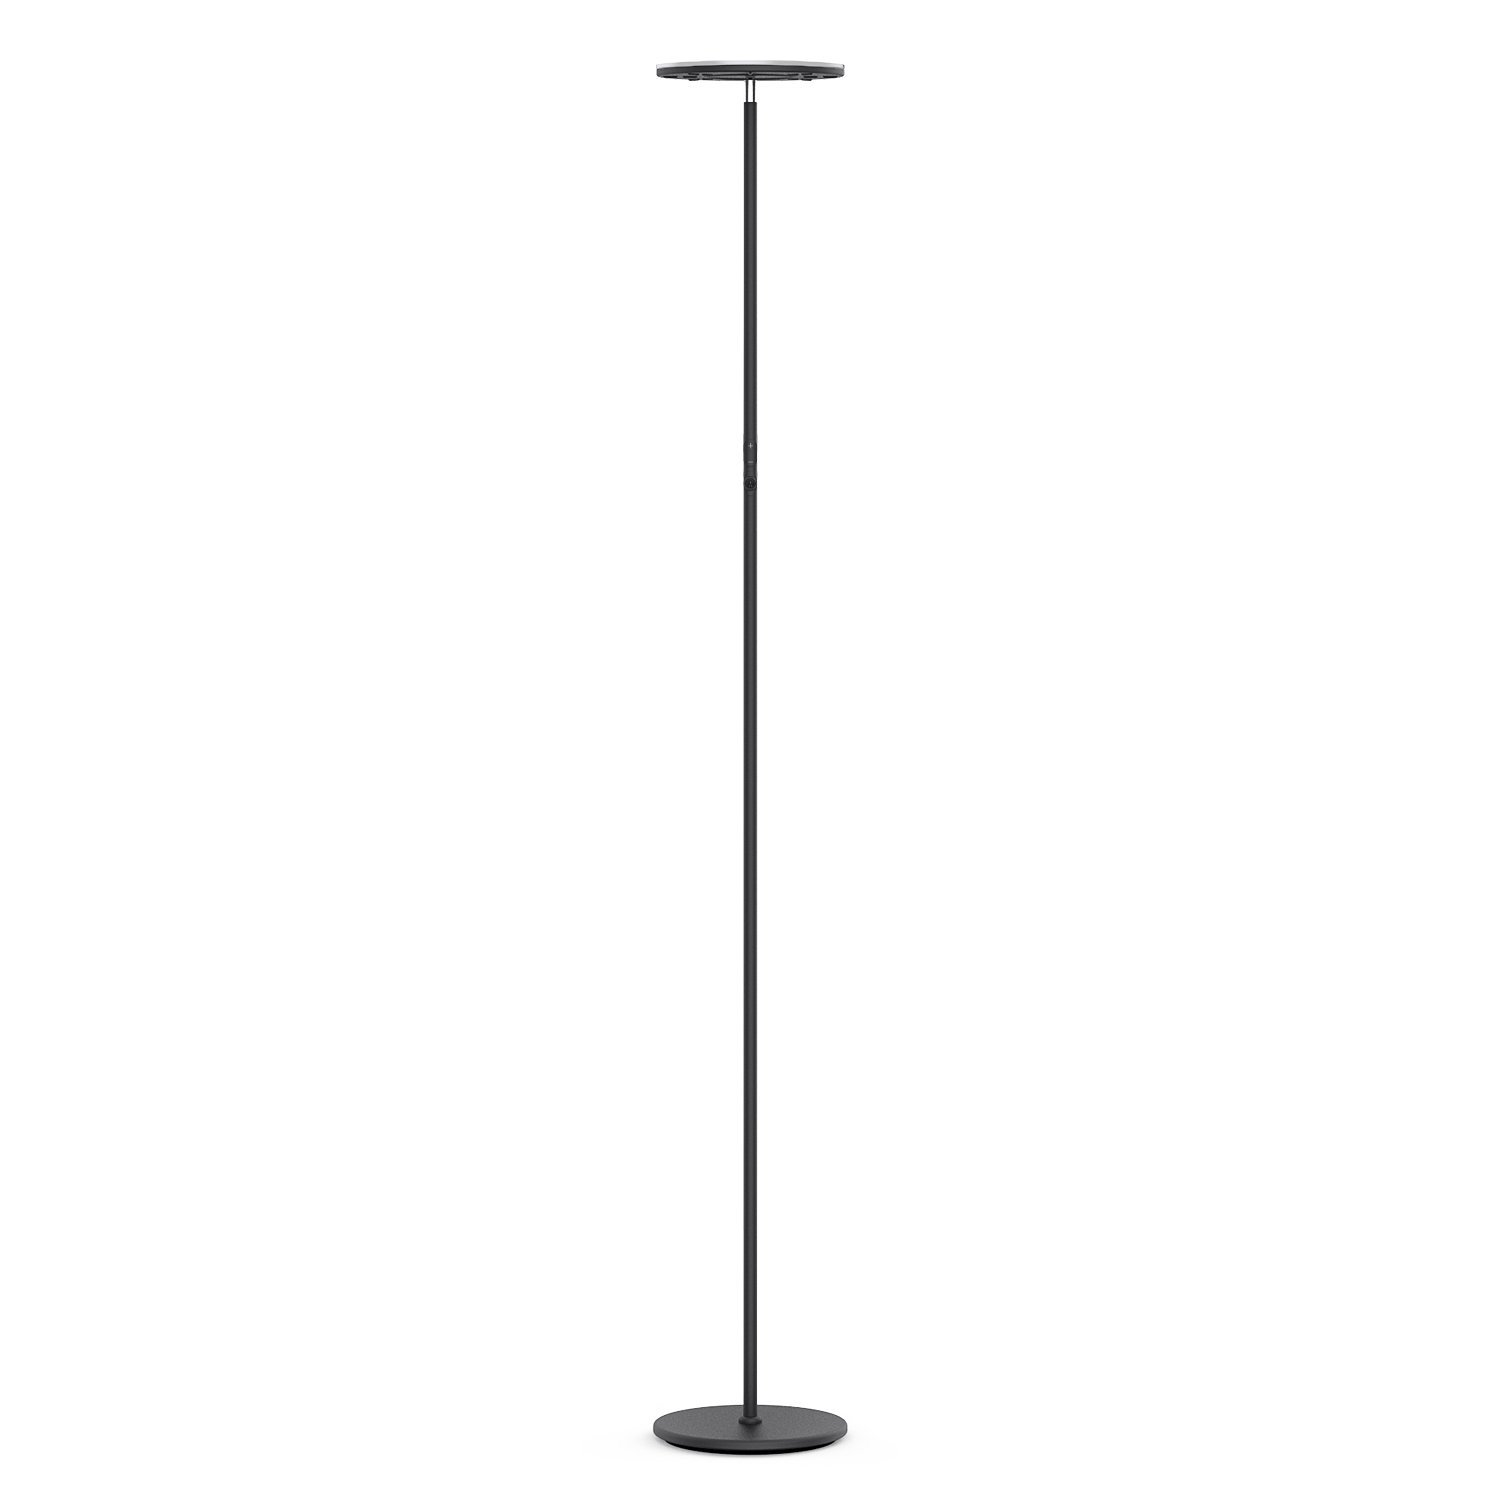 Bedroom Floor Lamps Vacnite 71 Inch Led Torchiere Bedroom Floor Lamp Review